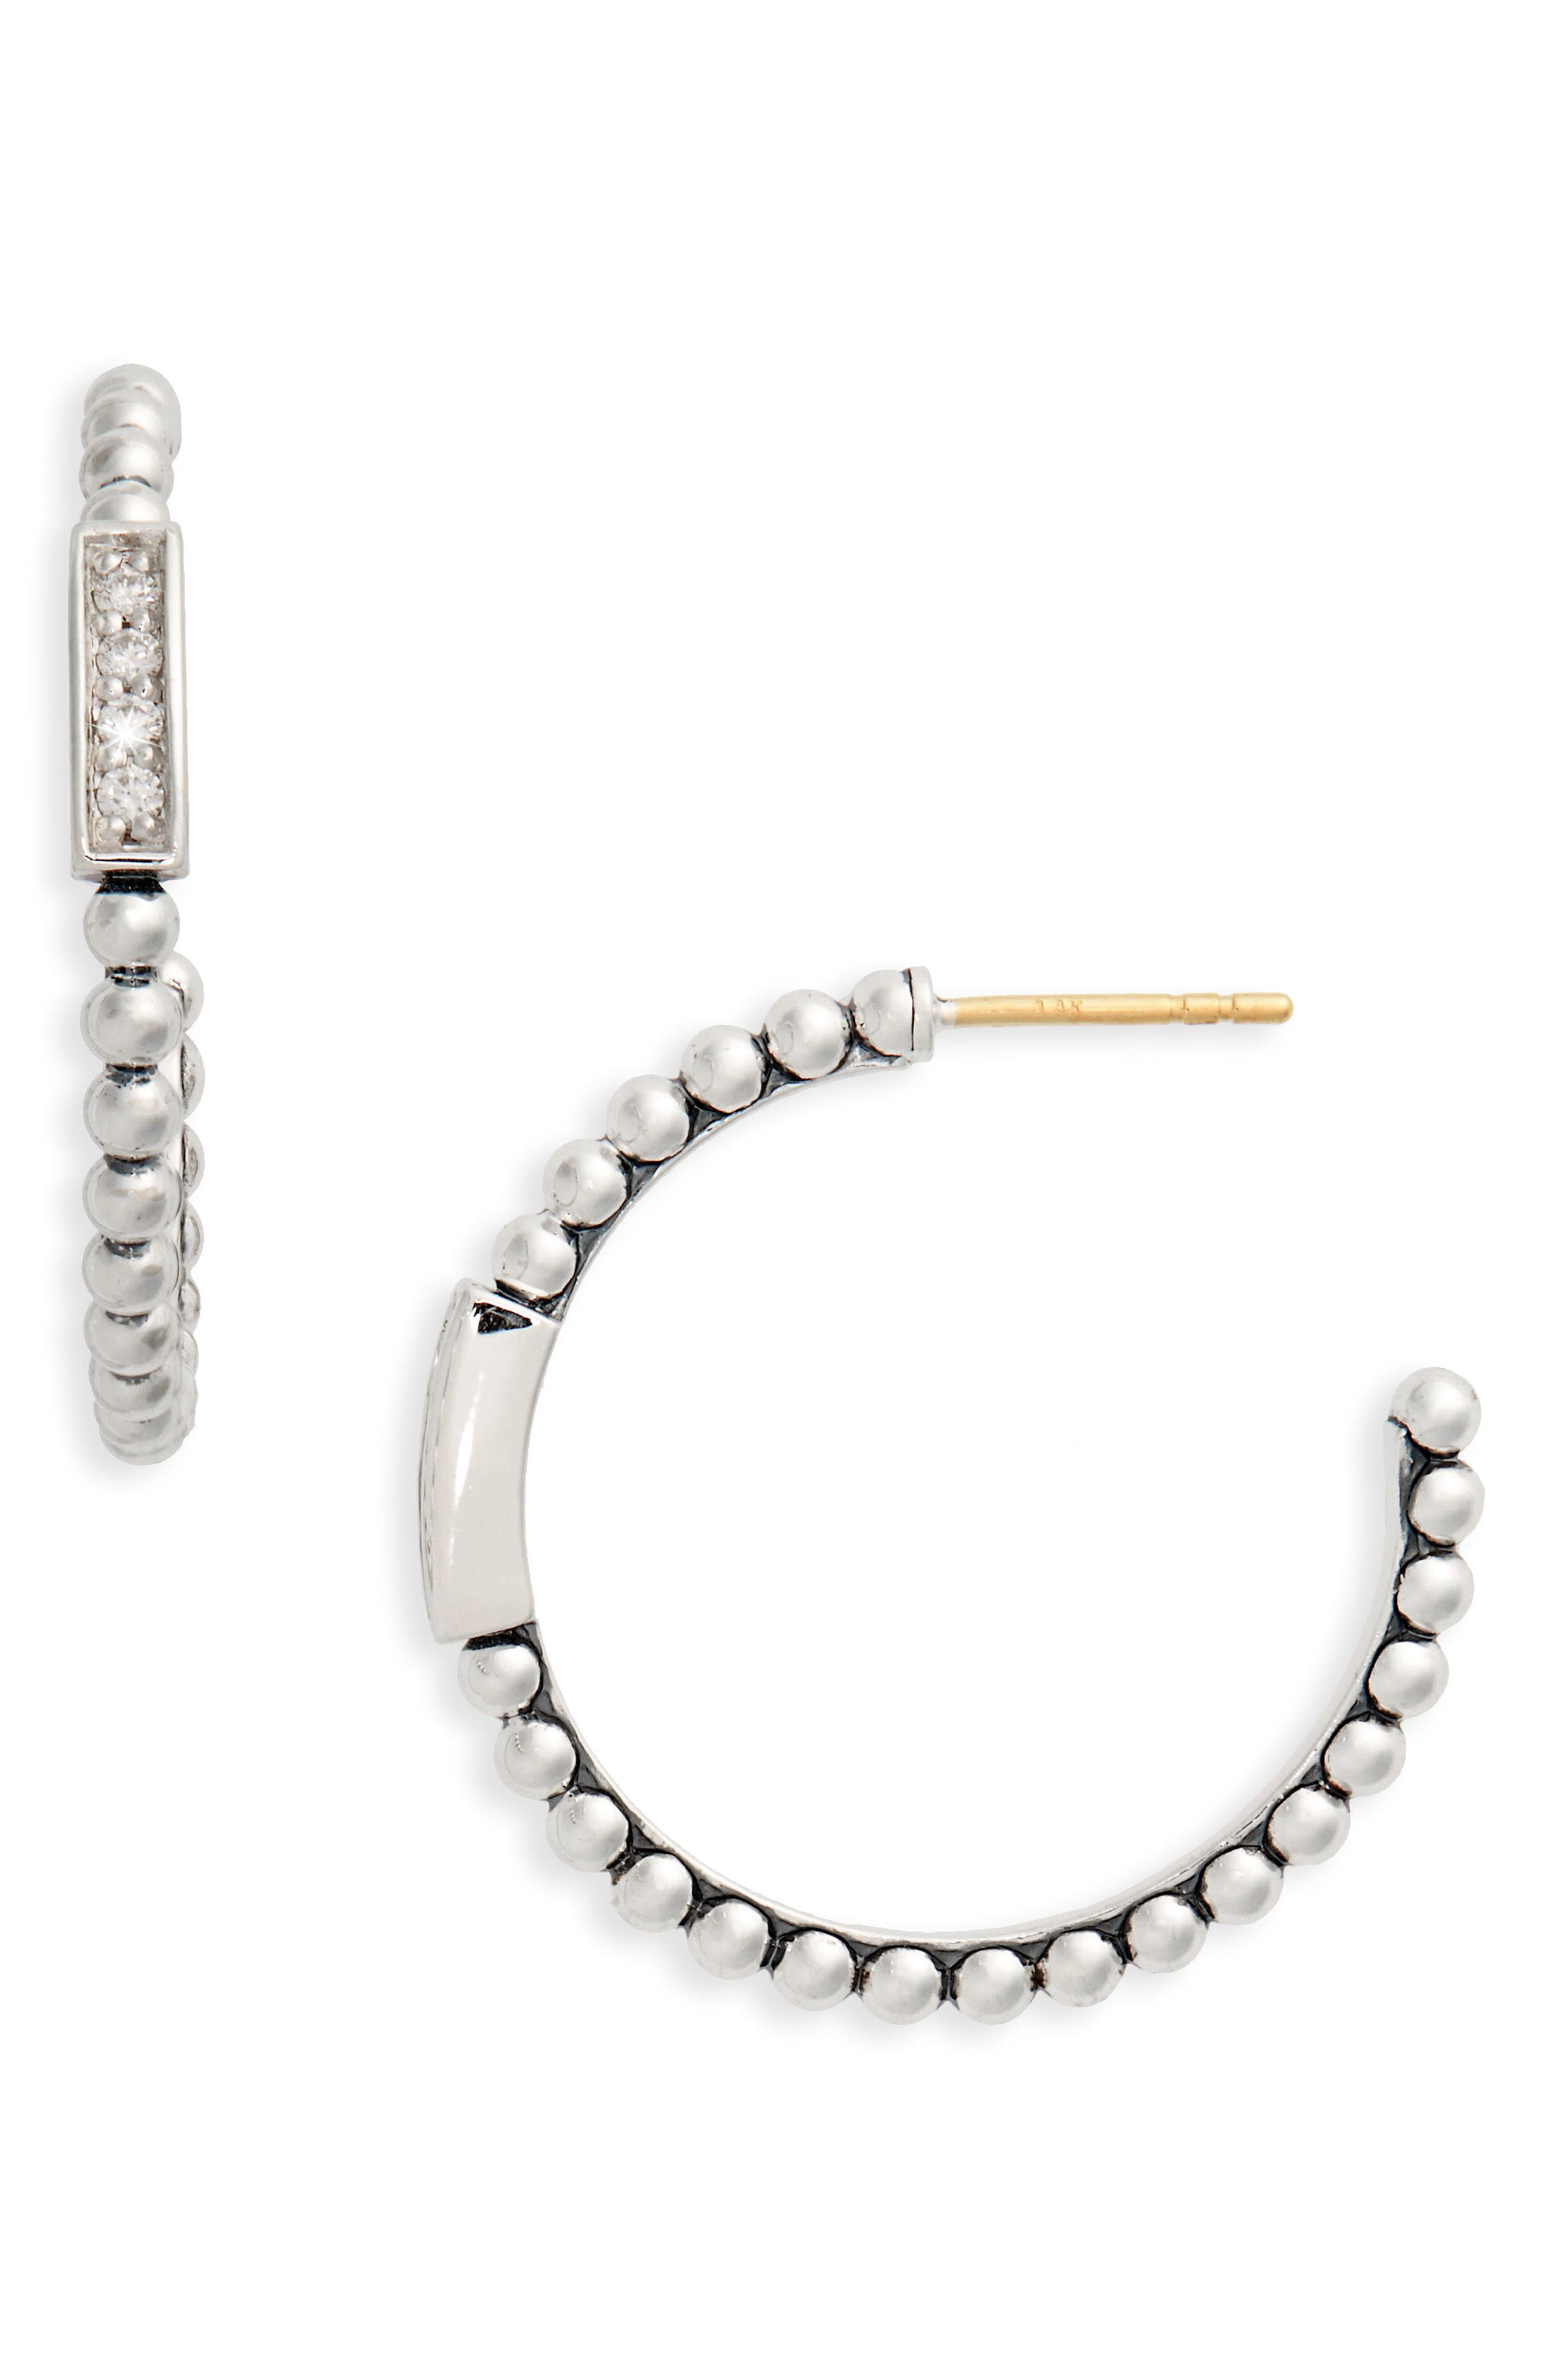 b9c58cb55 Lyst - Lagos Caviar Spark Diamond Hoop Earrings in Metallic